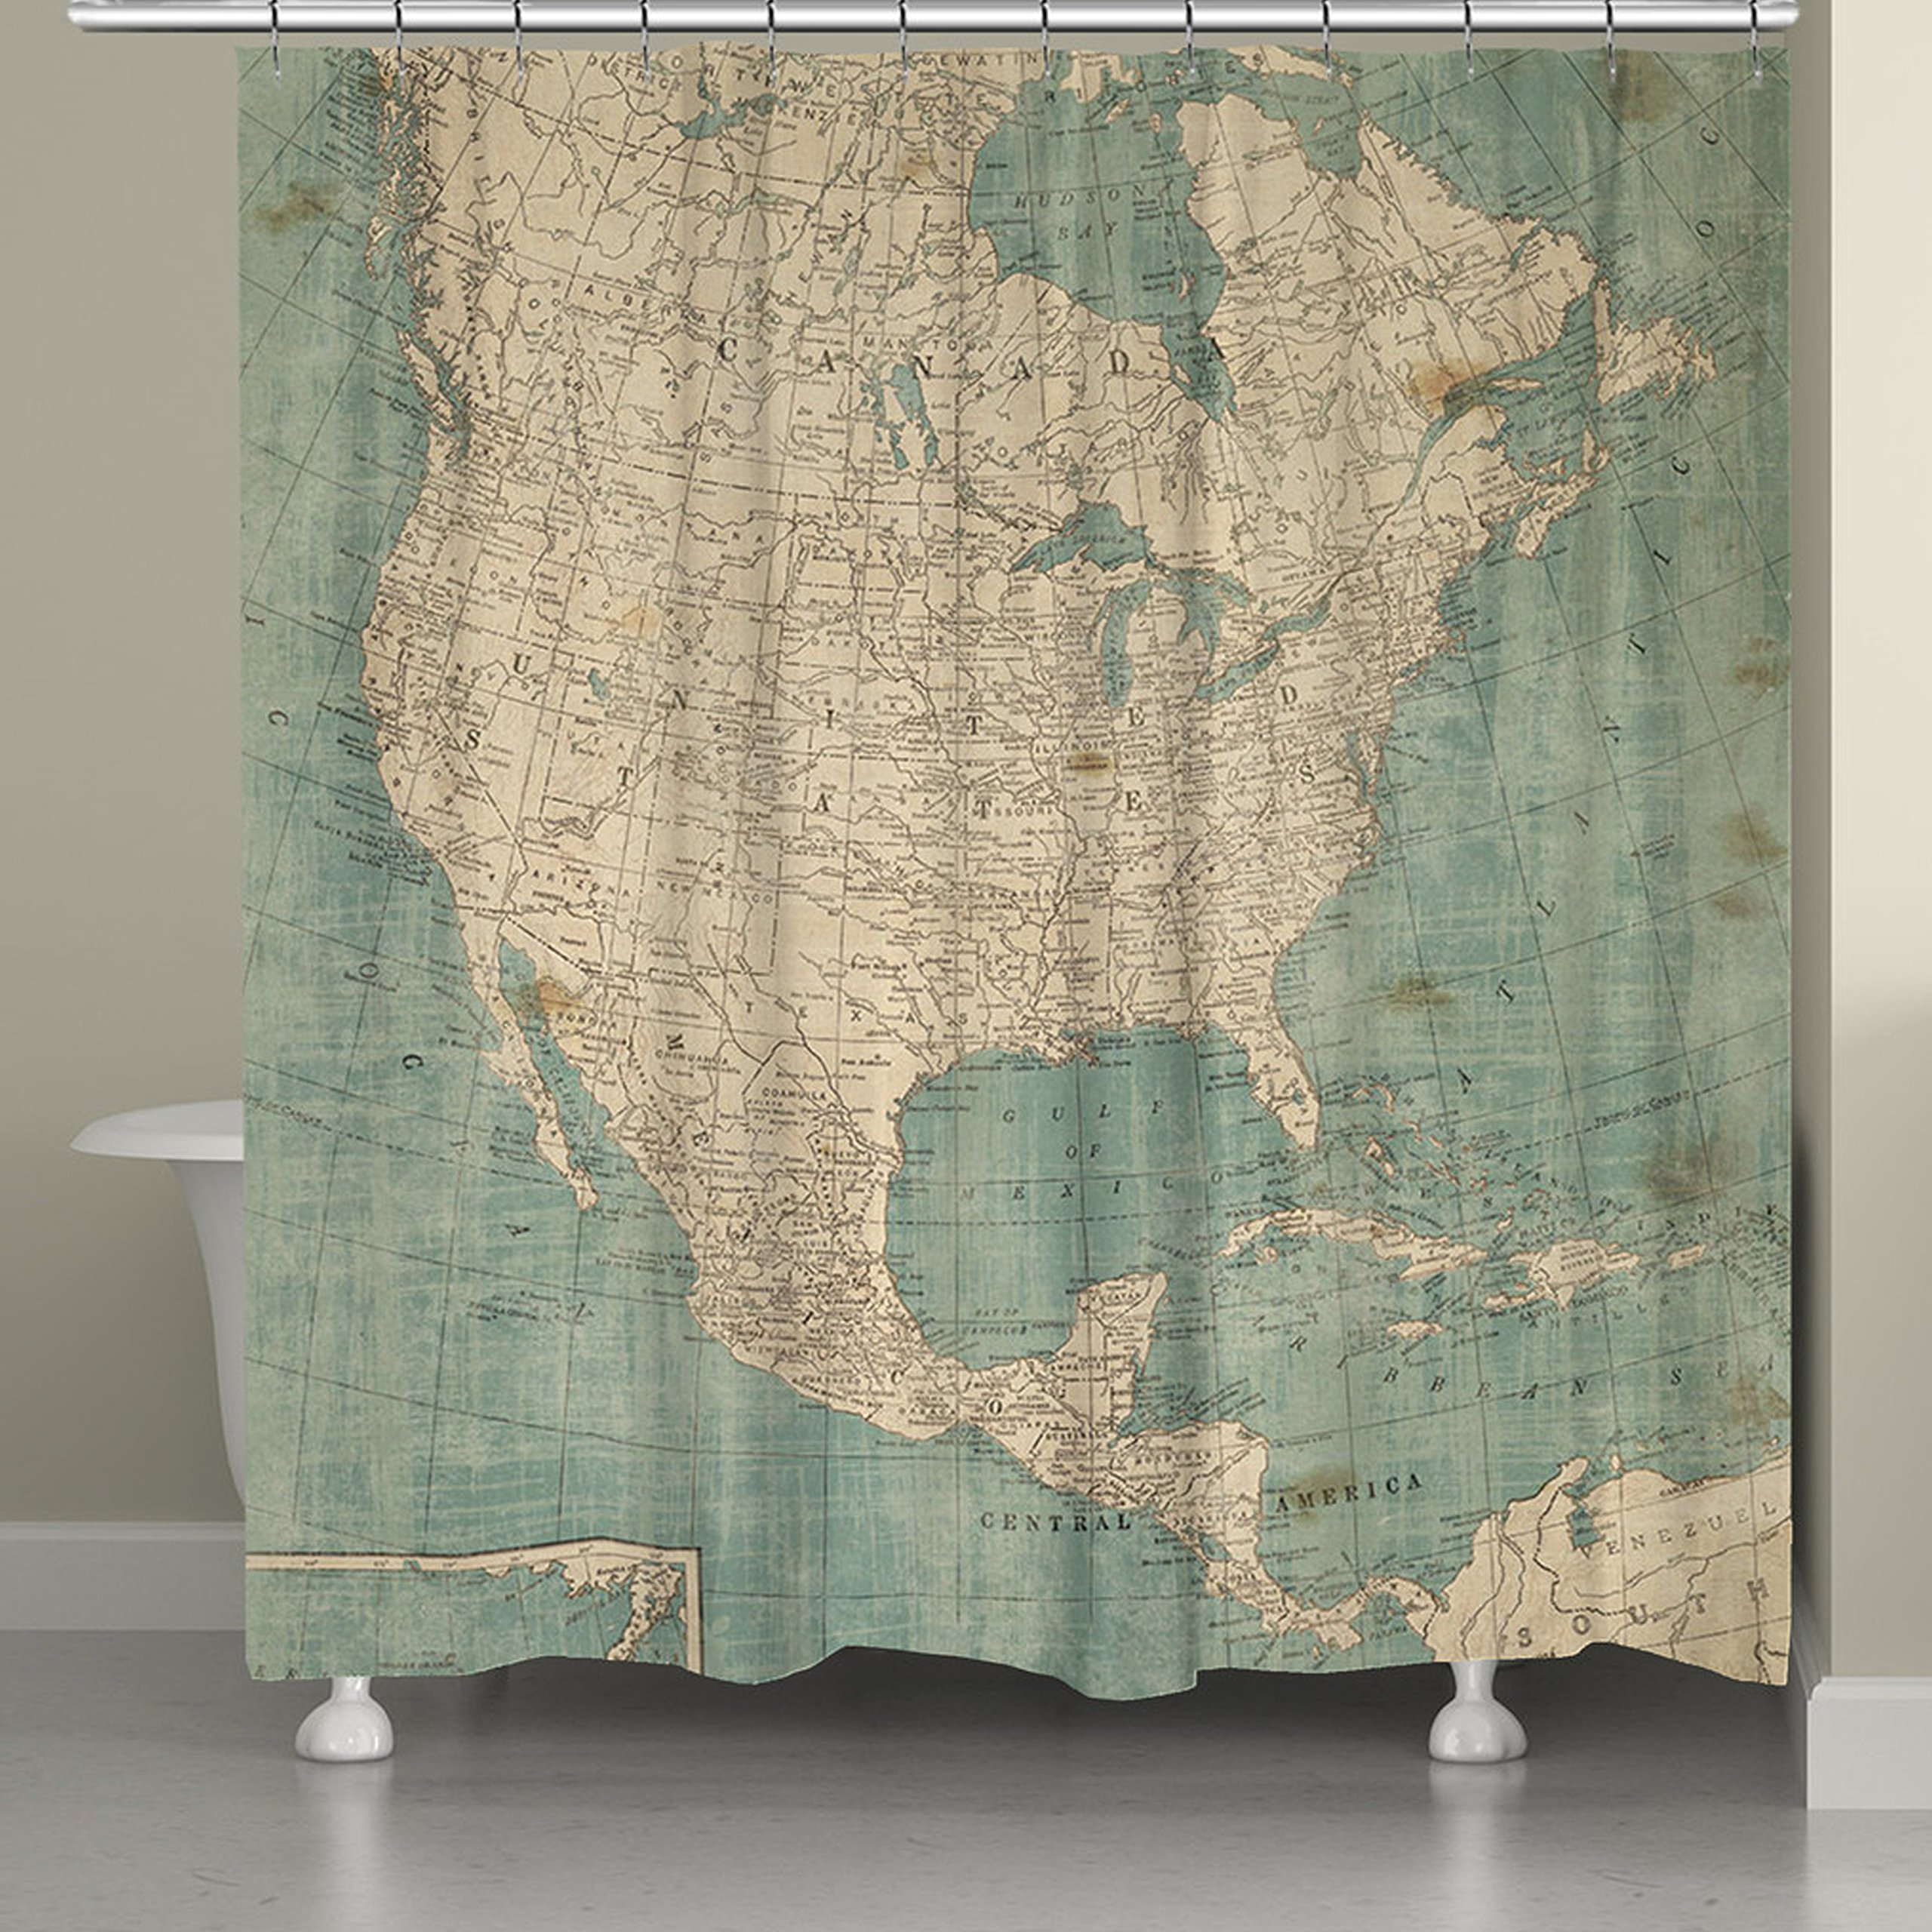 Laural Home NAM72SC North America Map Shower Curtain, Blue/Beige